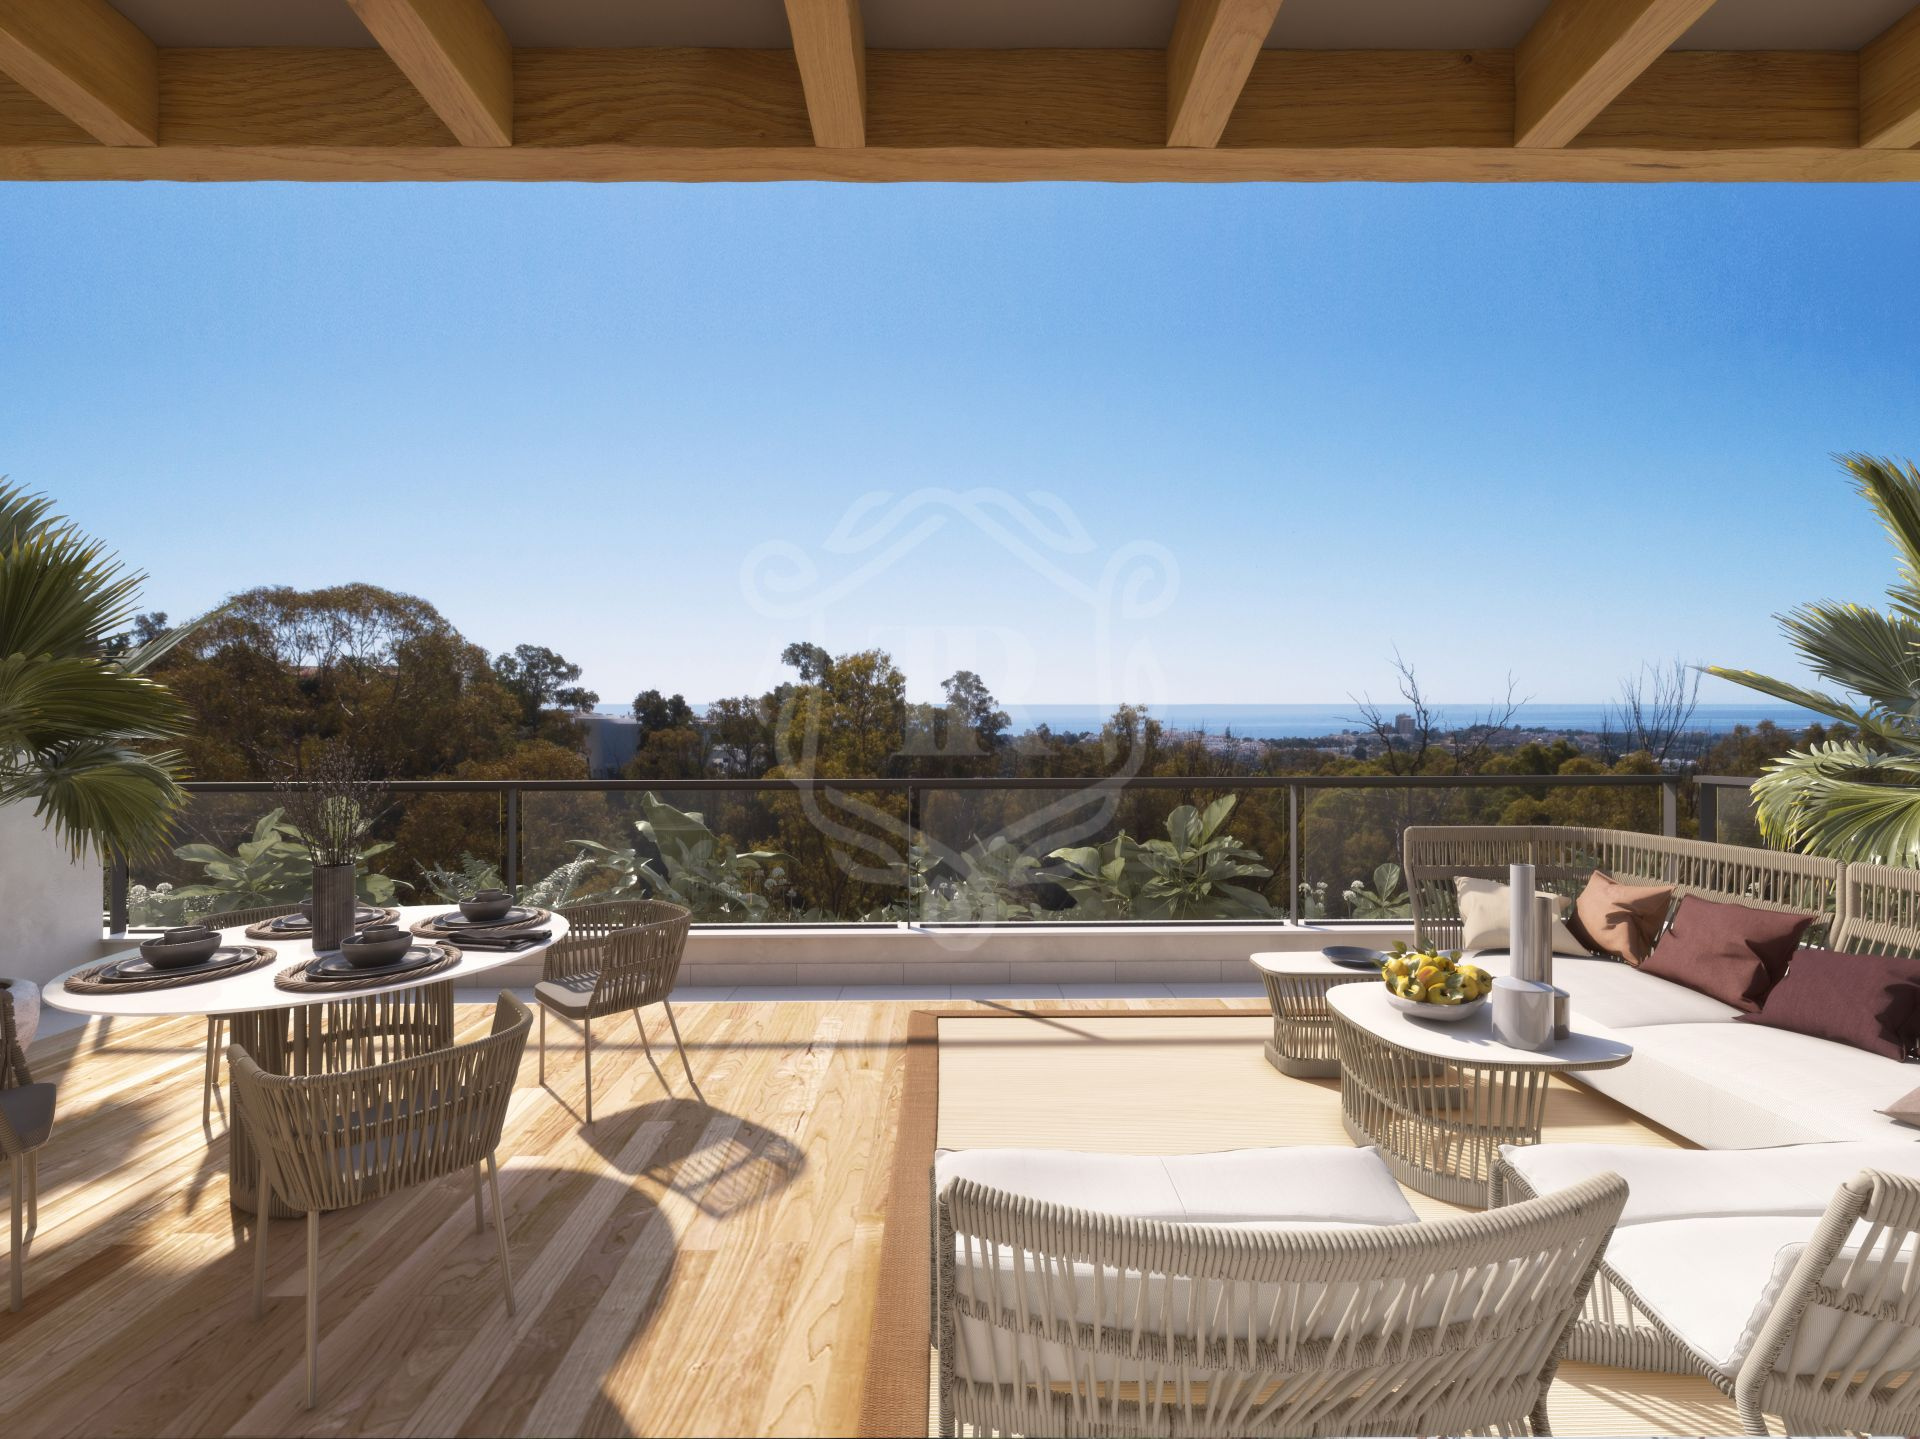 Fantastic 3-bedroom penthouse with panoramic views in Nueva Andalucia - Marbella Lake